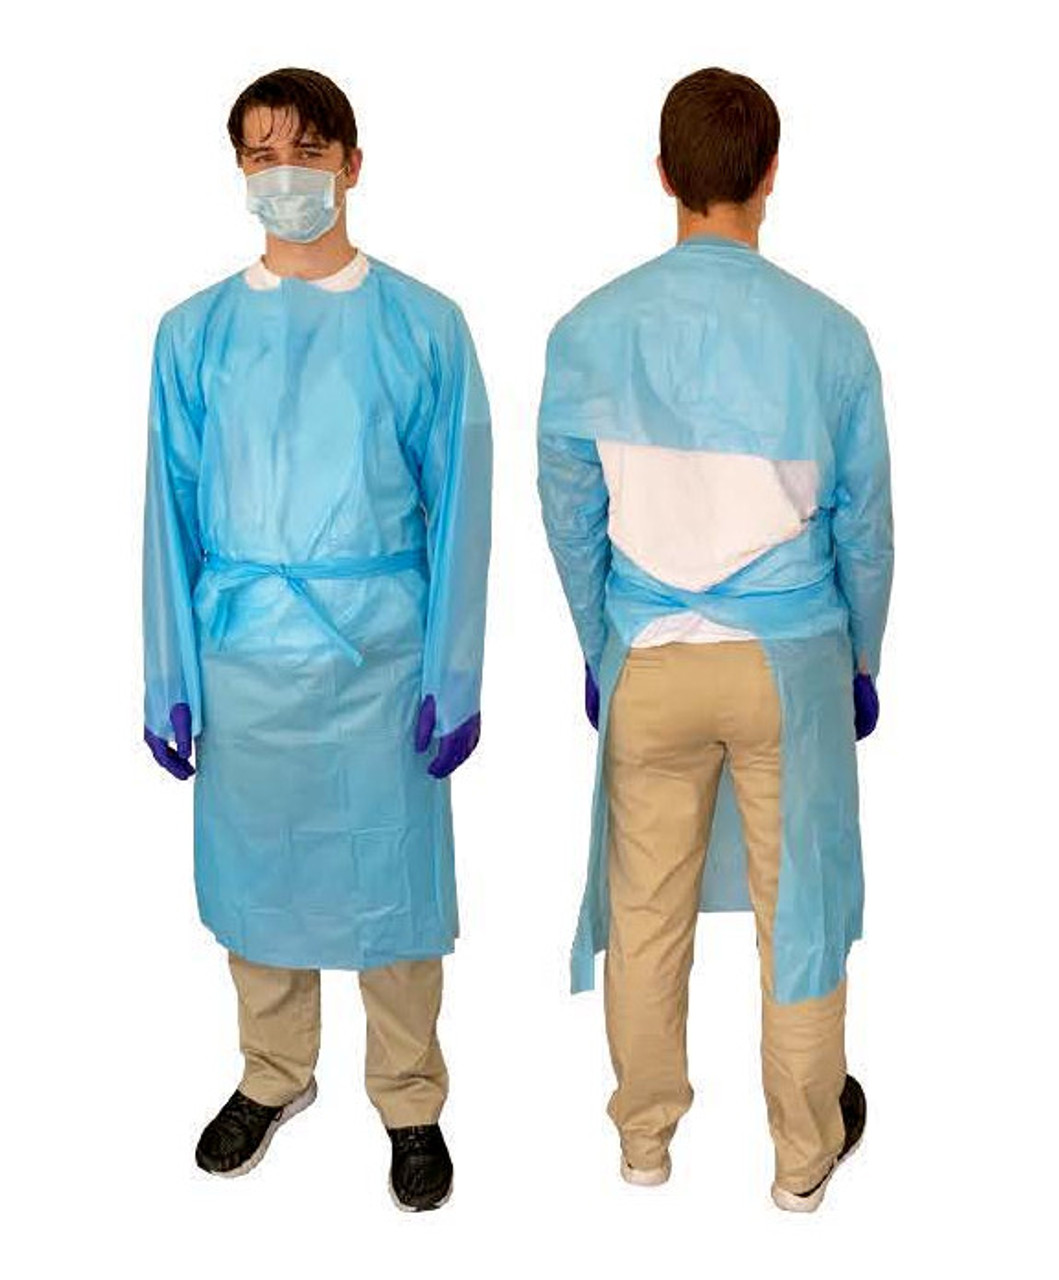 LabAid Fluid Impervious Polypropolene Gown, thumb-loop, unisize